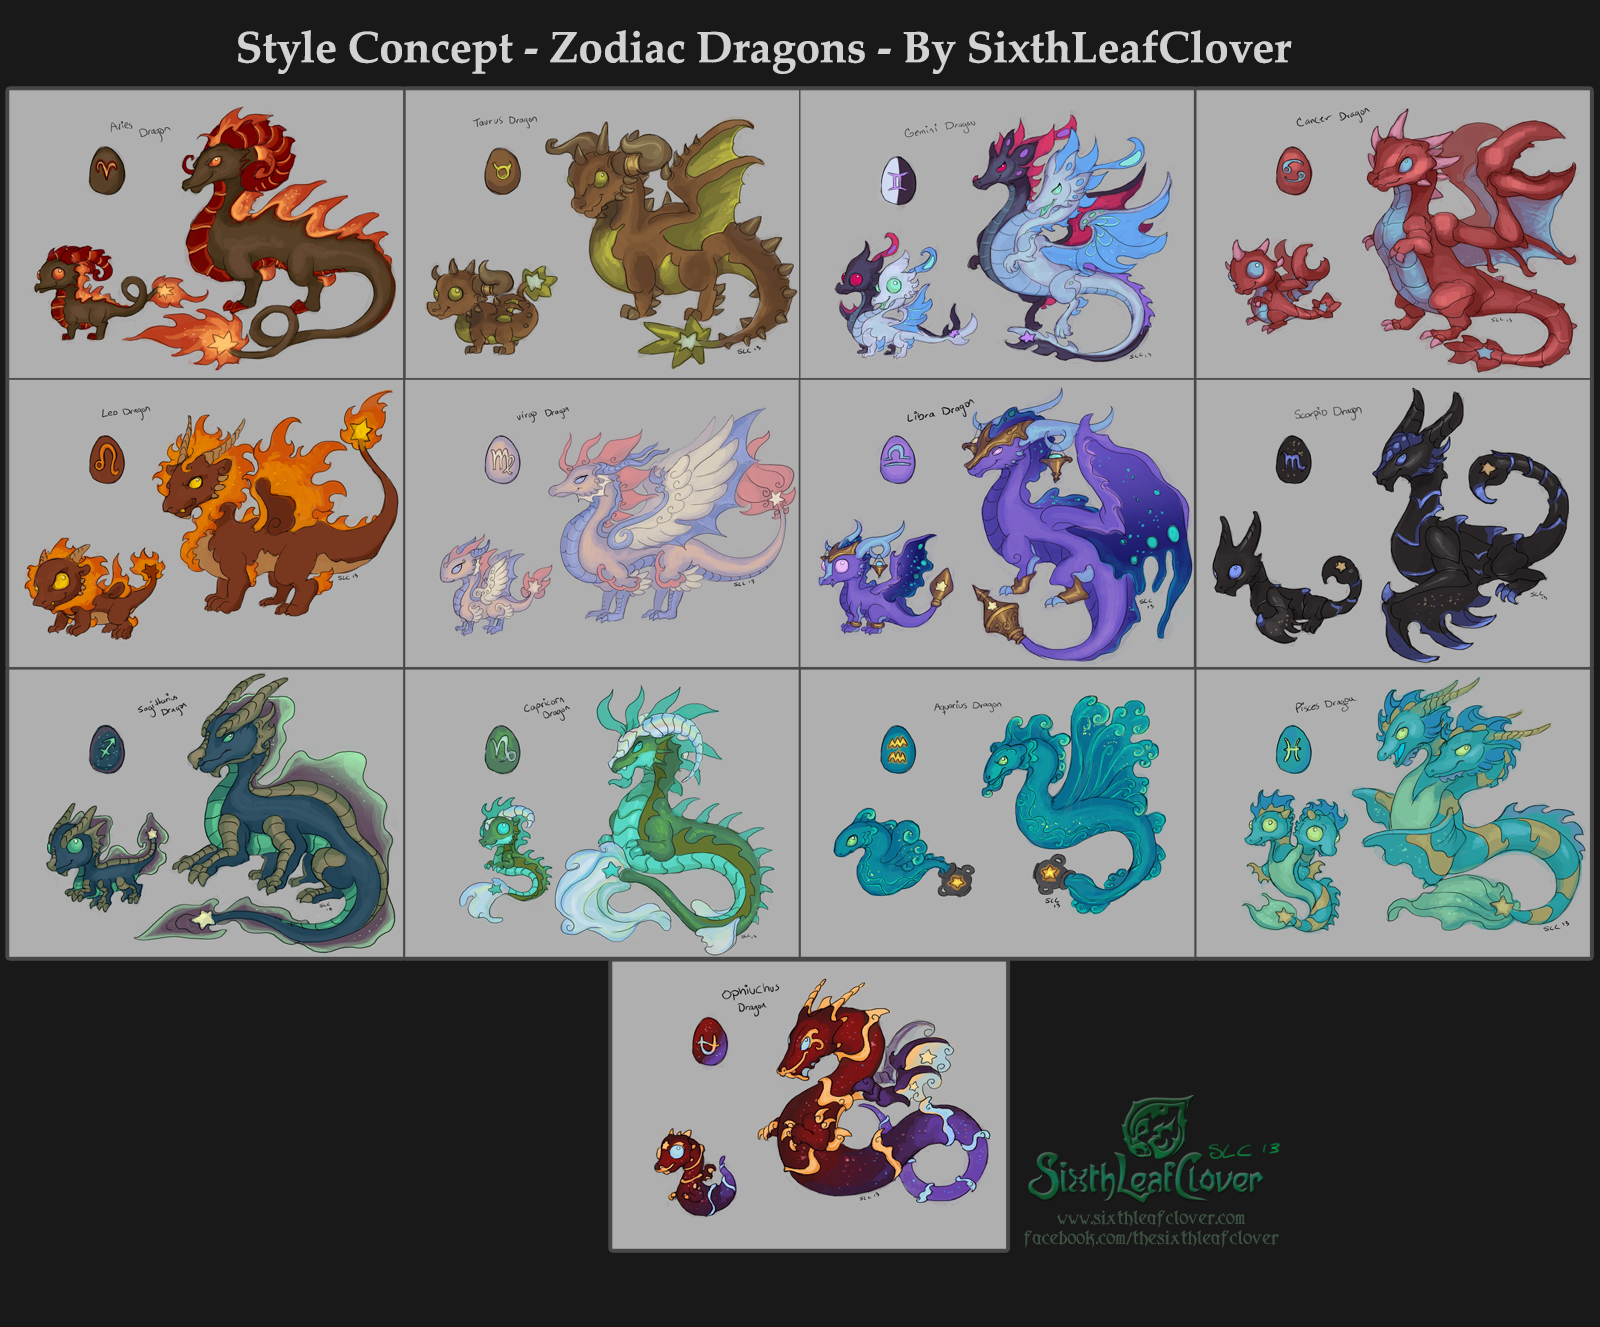 image dragonvale12 zodiac jpg dragonvale wiki fandom powered